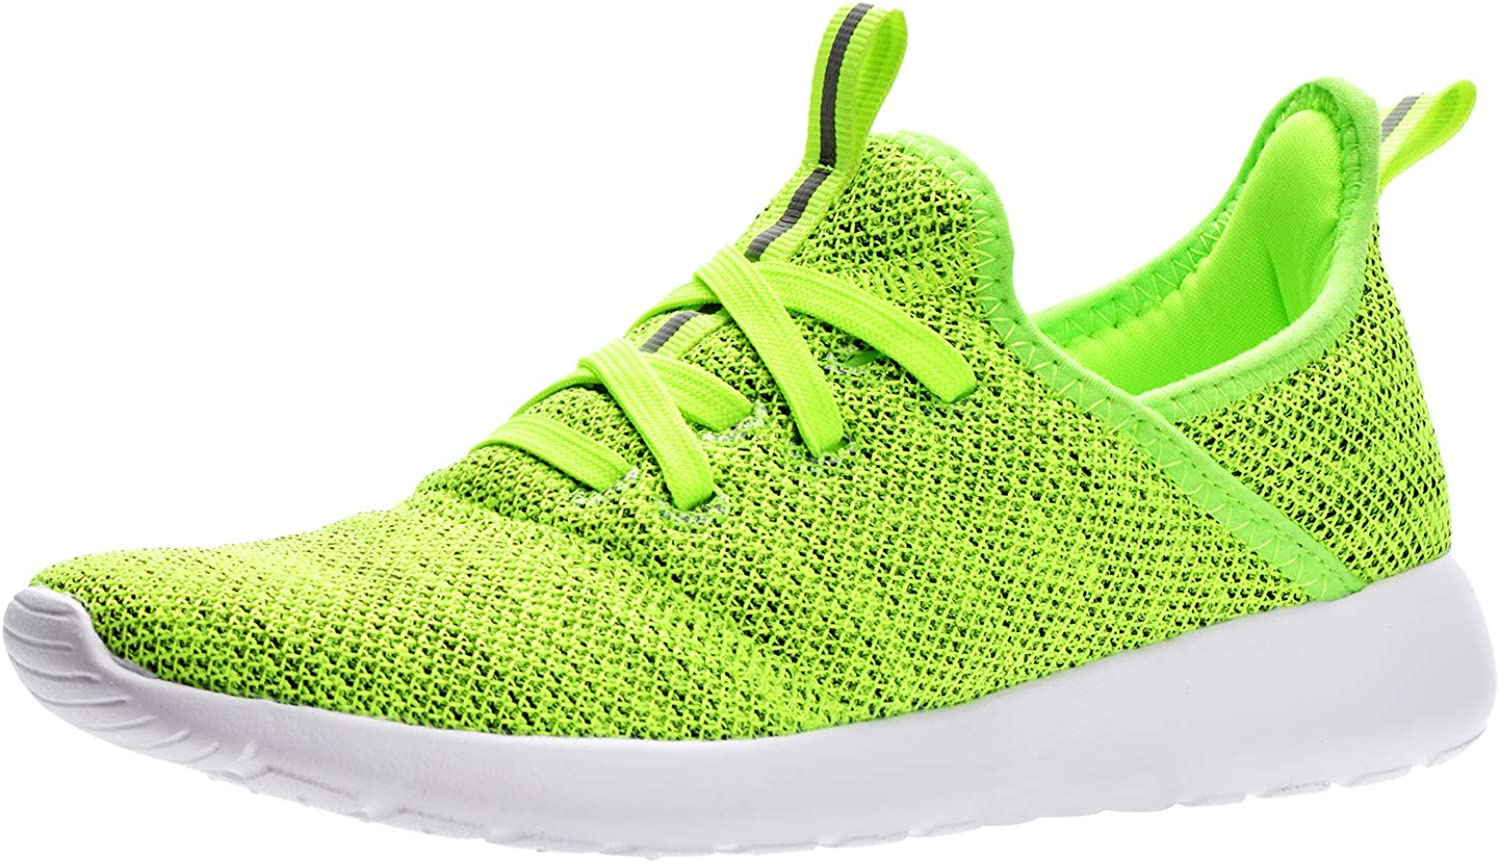 CUYIOM 5% Max 87% OFF OFF Men's Walking Shoes Outdoor Fas Lightweight Running